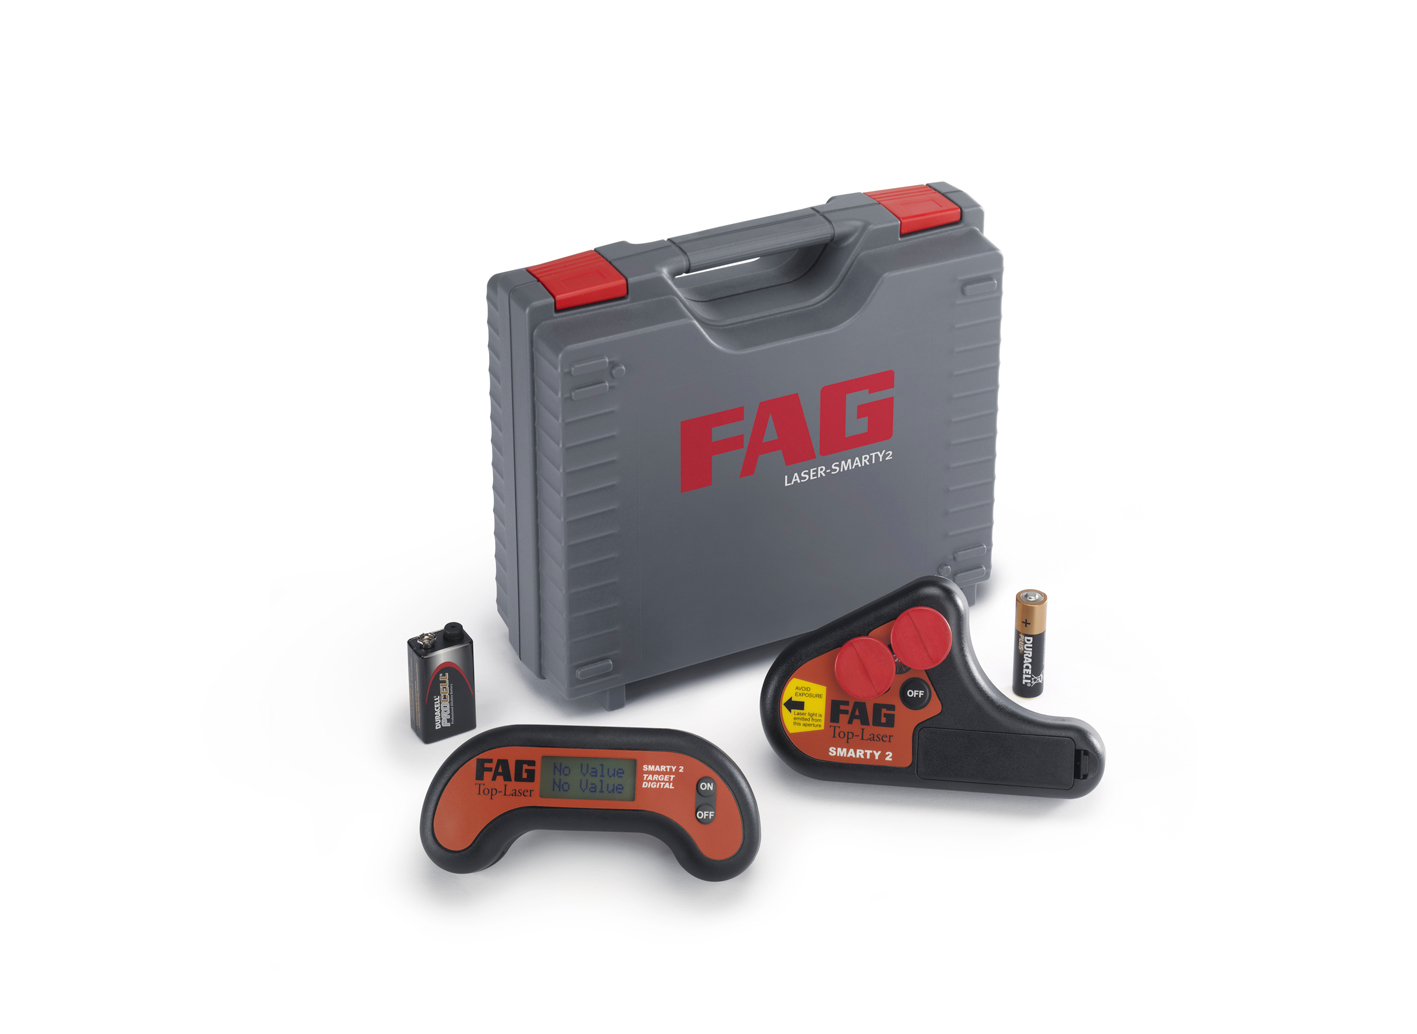 LASER SMARTY 2: FAG Top-Laser SMARTY2 Tool - Belt Pulley Alignment Device